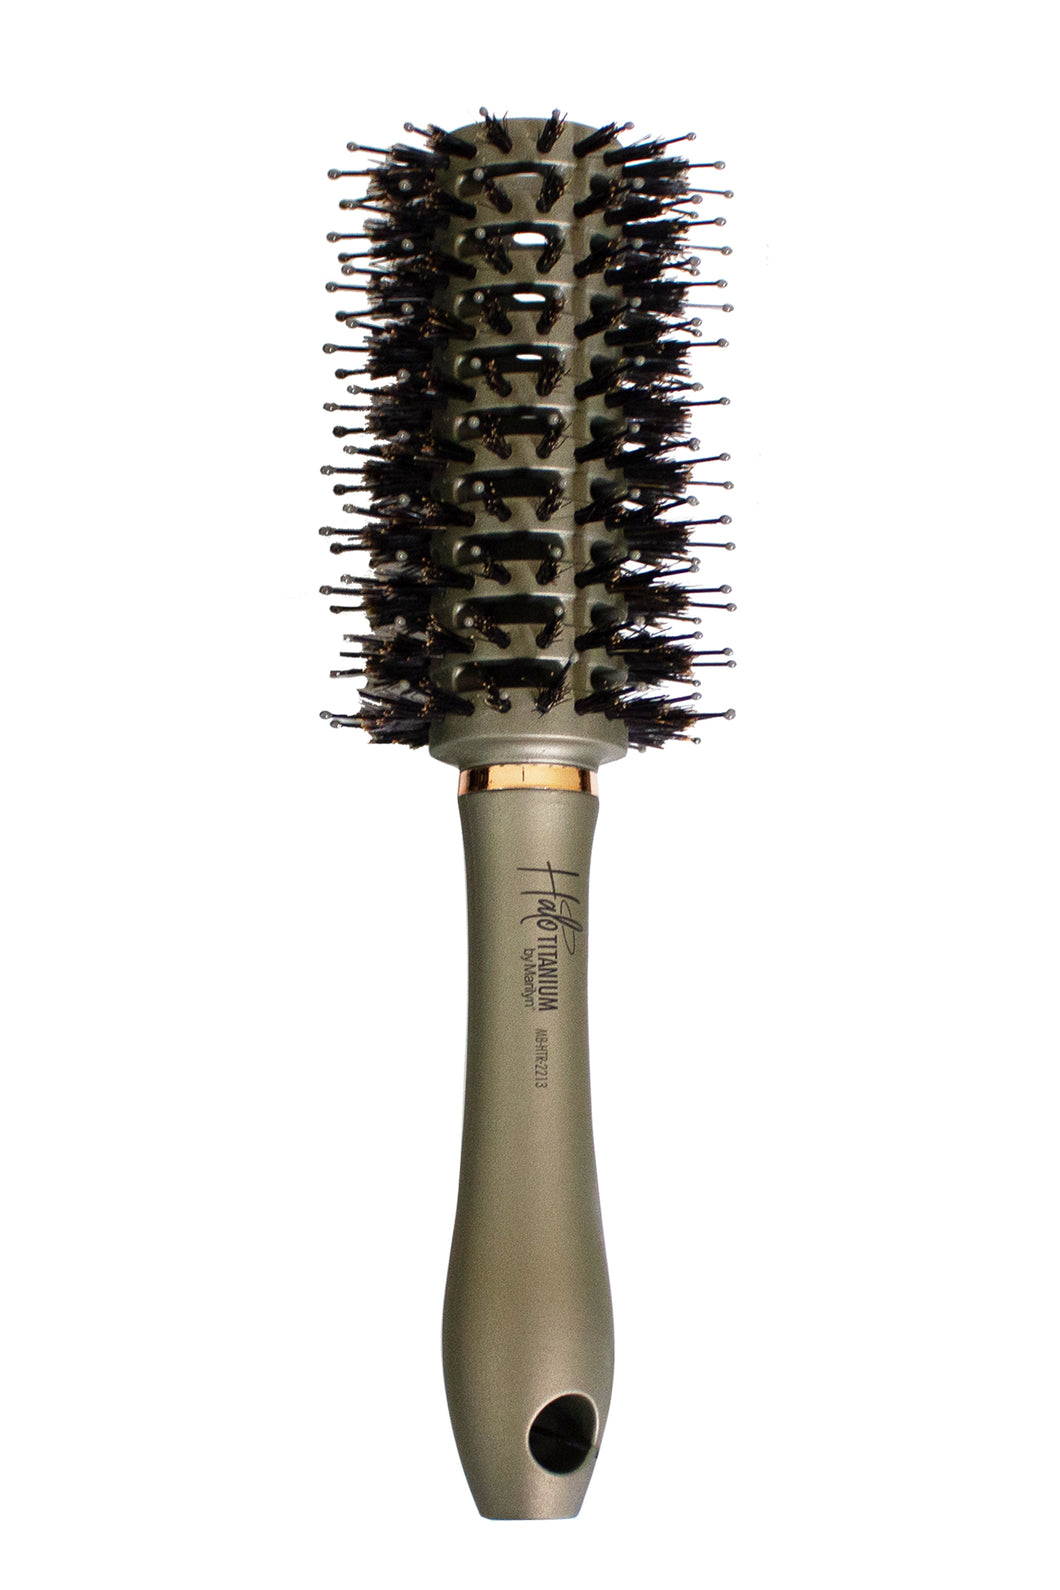 Marilyn Brush - Halo Titanium Round 2.5in